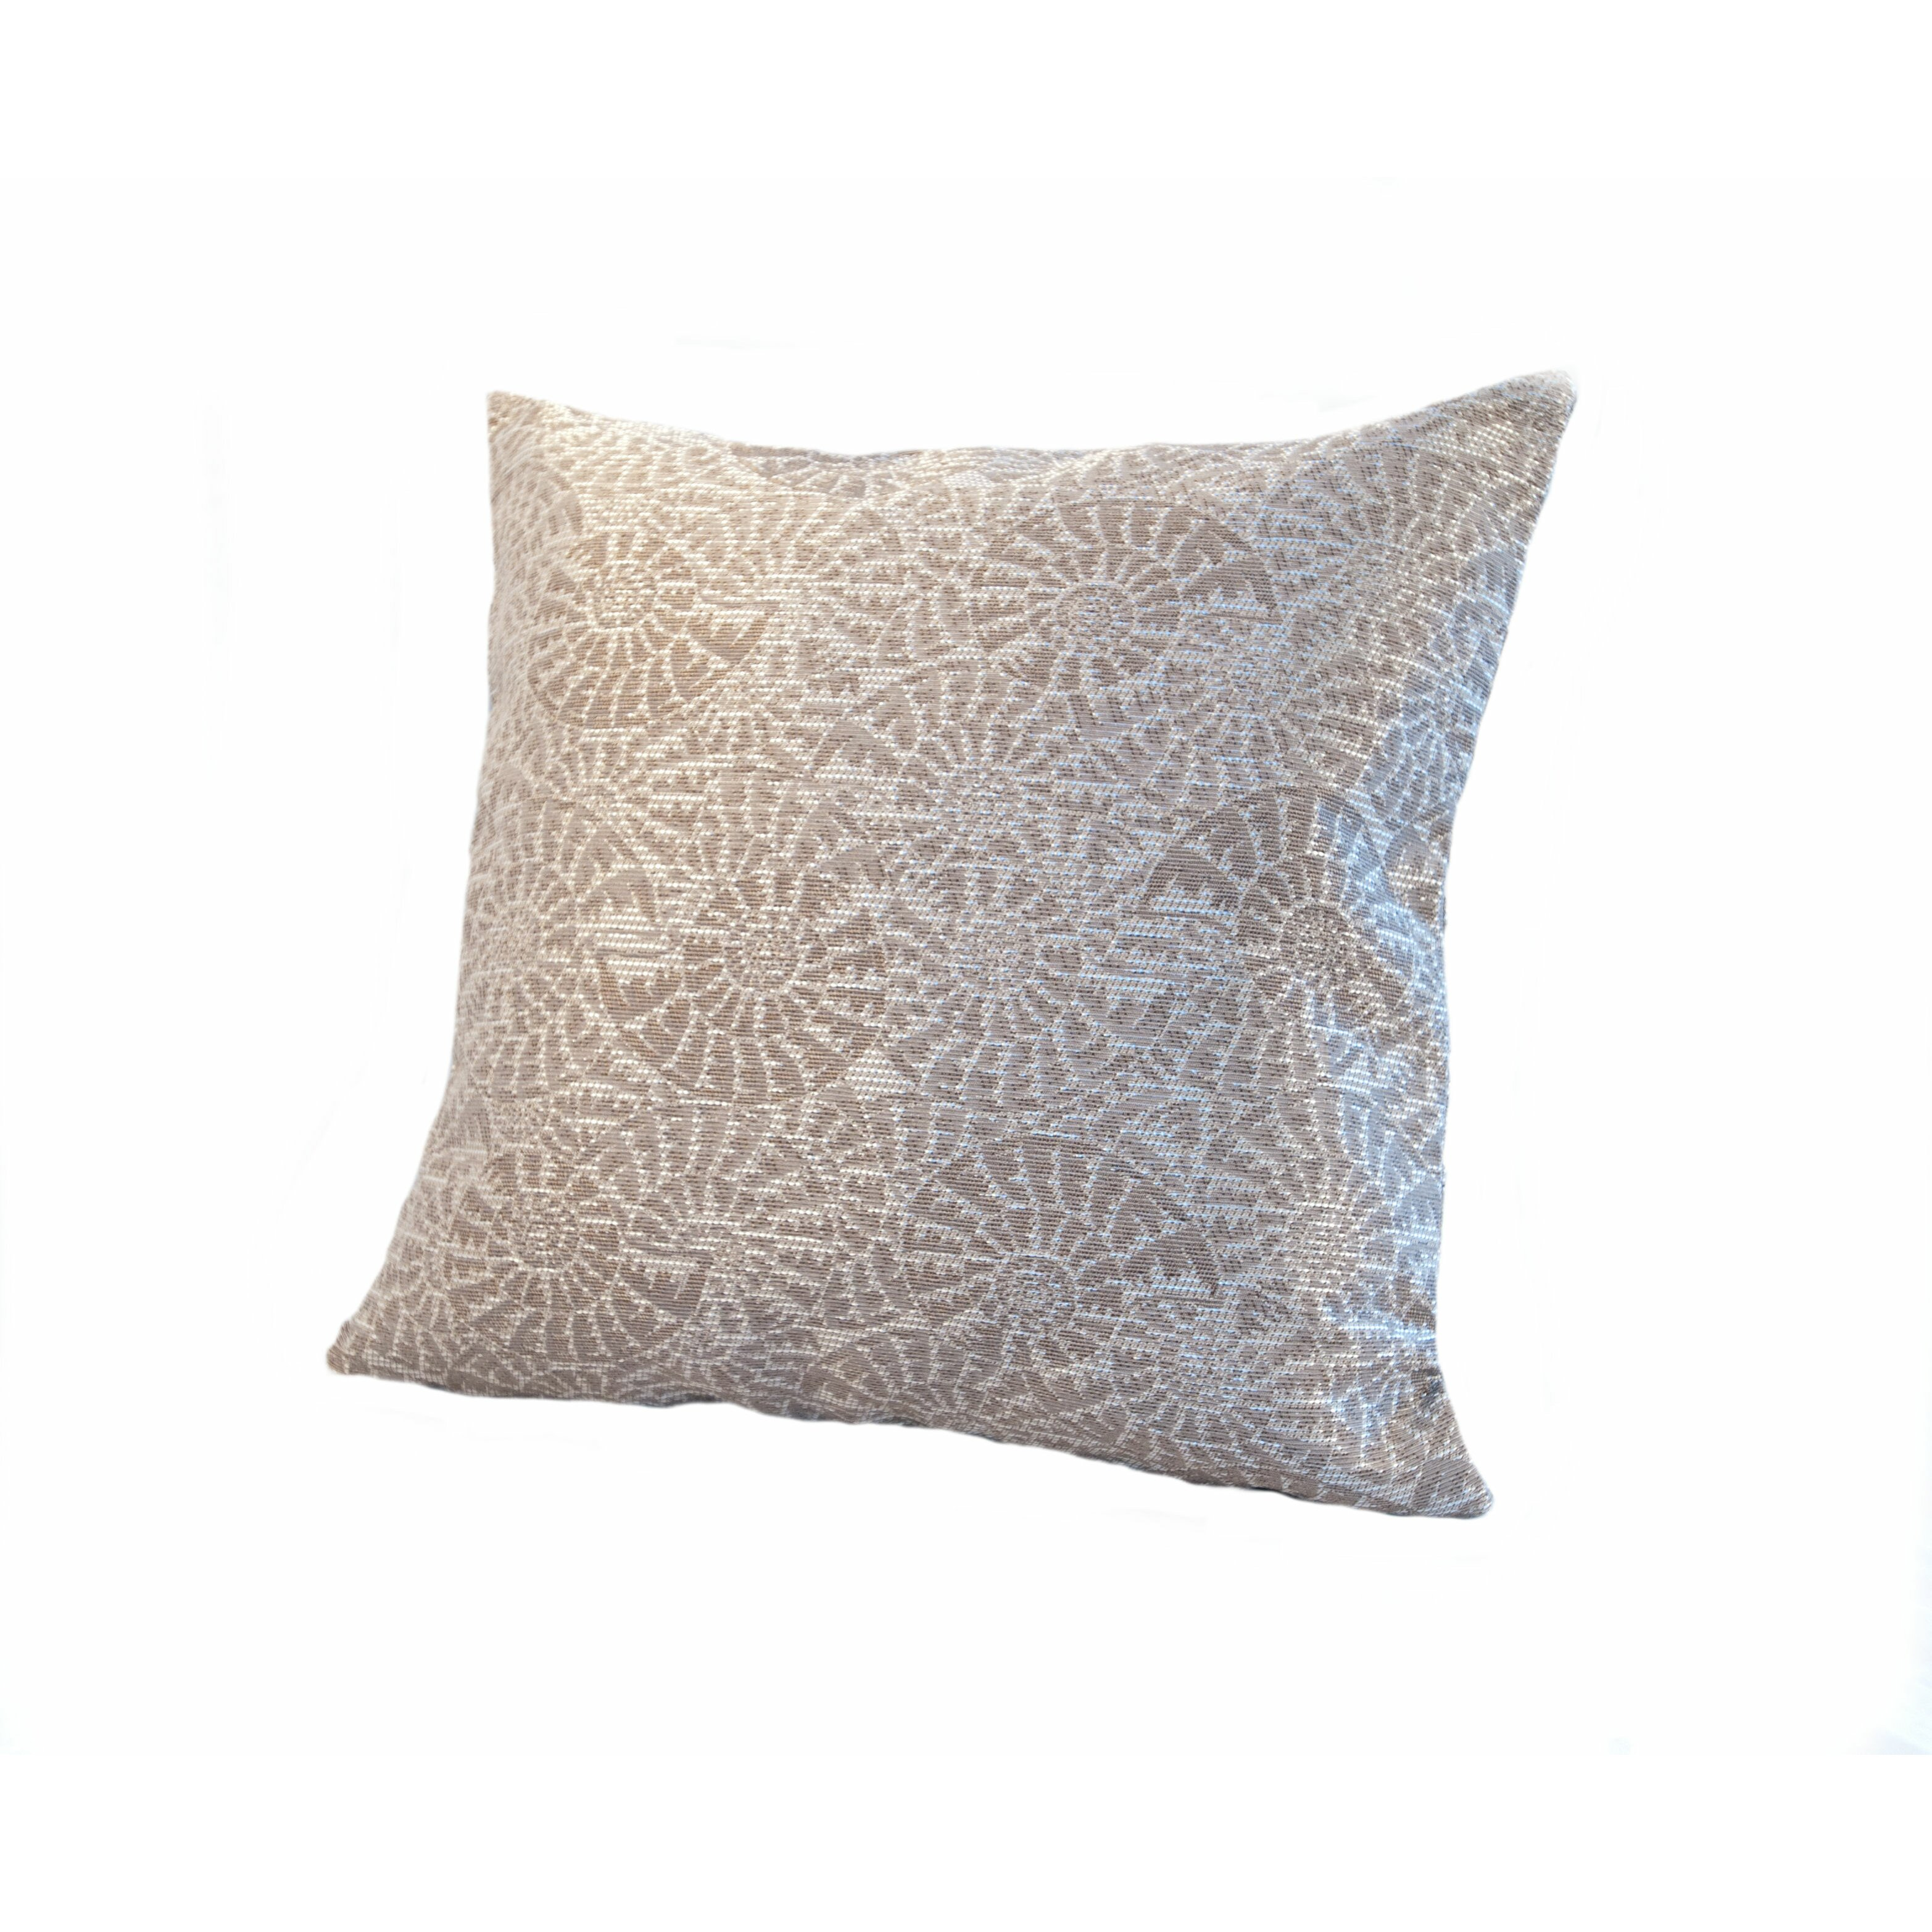 Pool Blue Throw Pillows : Rennie & Rose Design Group Coastal Tide Pool Throw Pillow & Reviews Wayfair